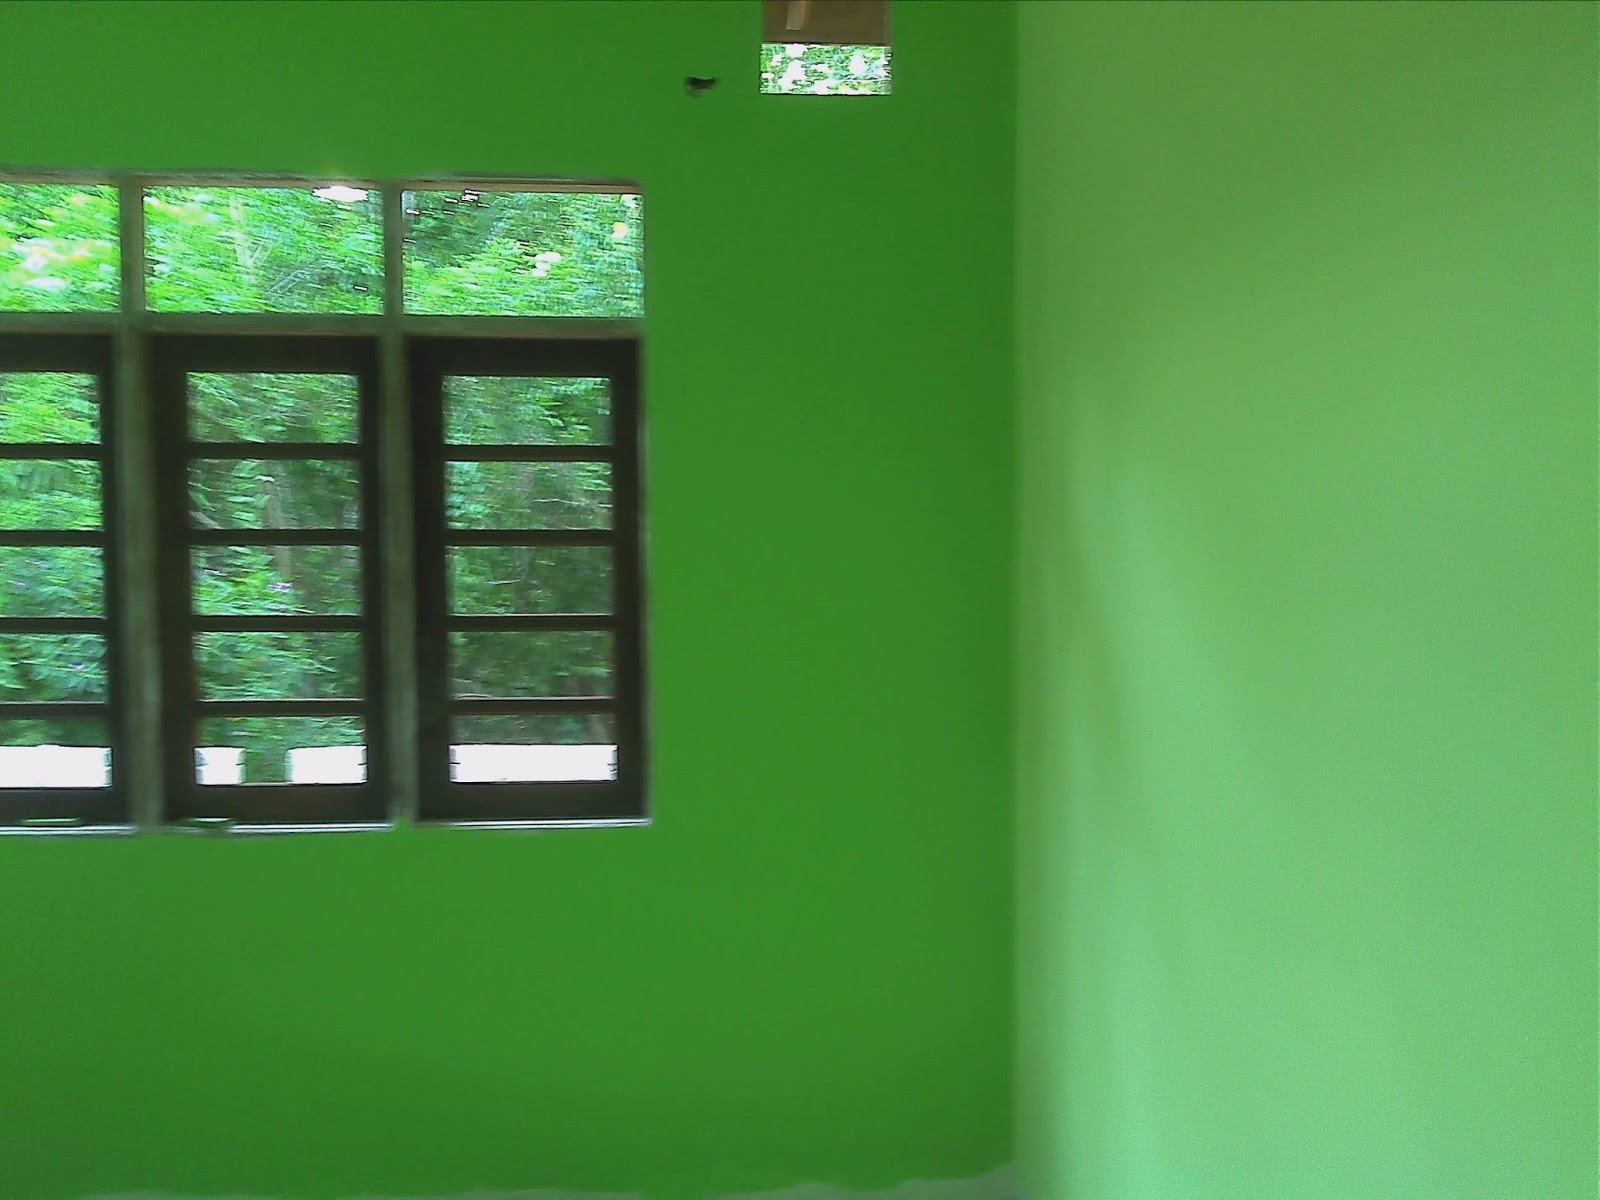 rumah warna hijau muda submited images